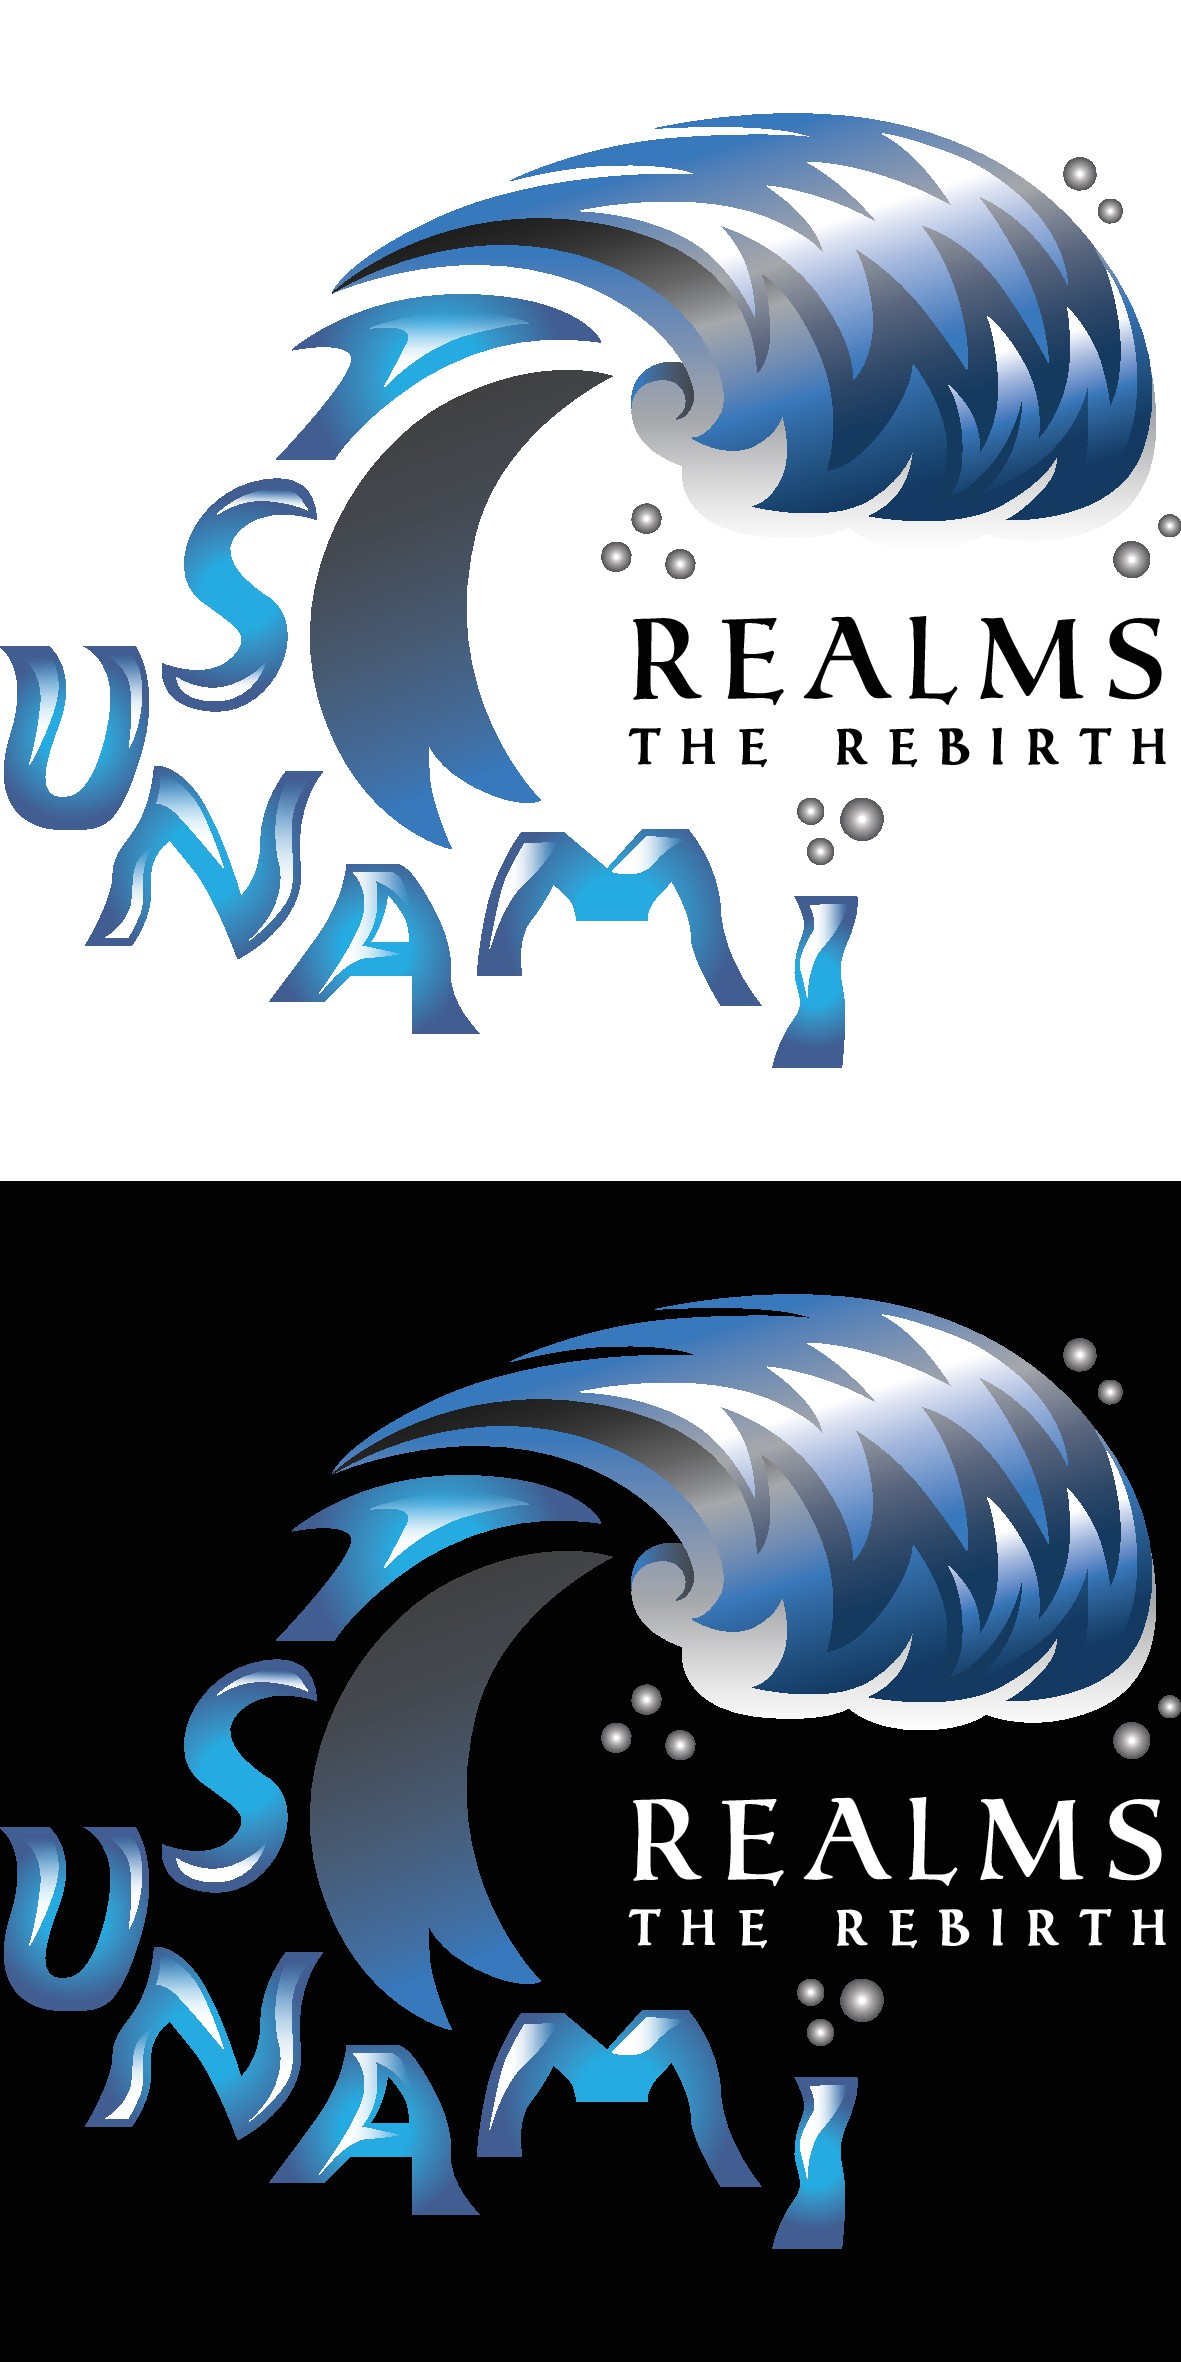 Create the Logo for a new RPG game called Tsunami Realms